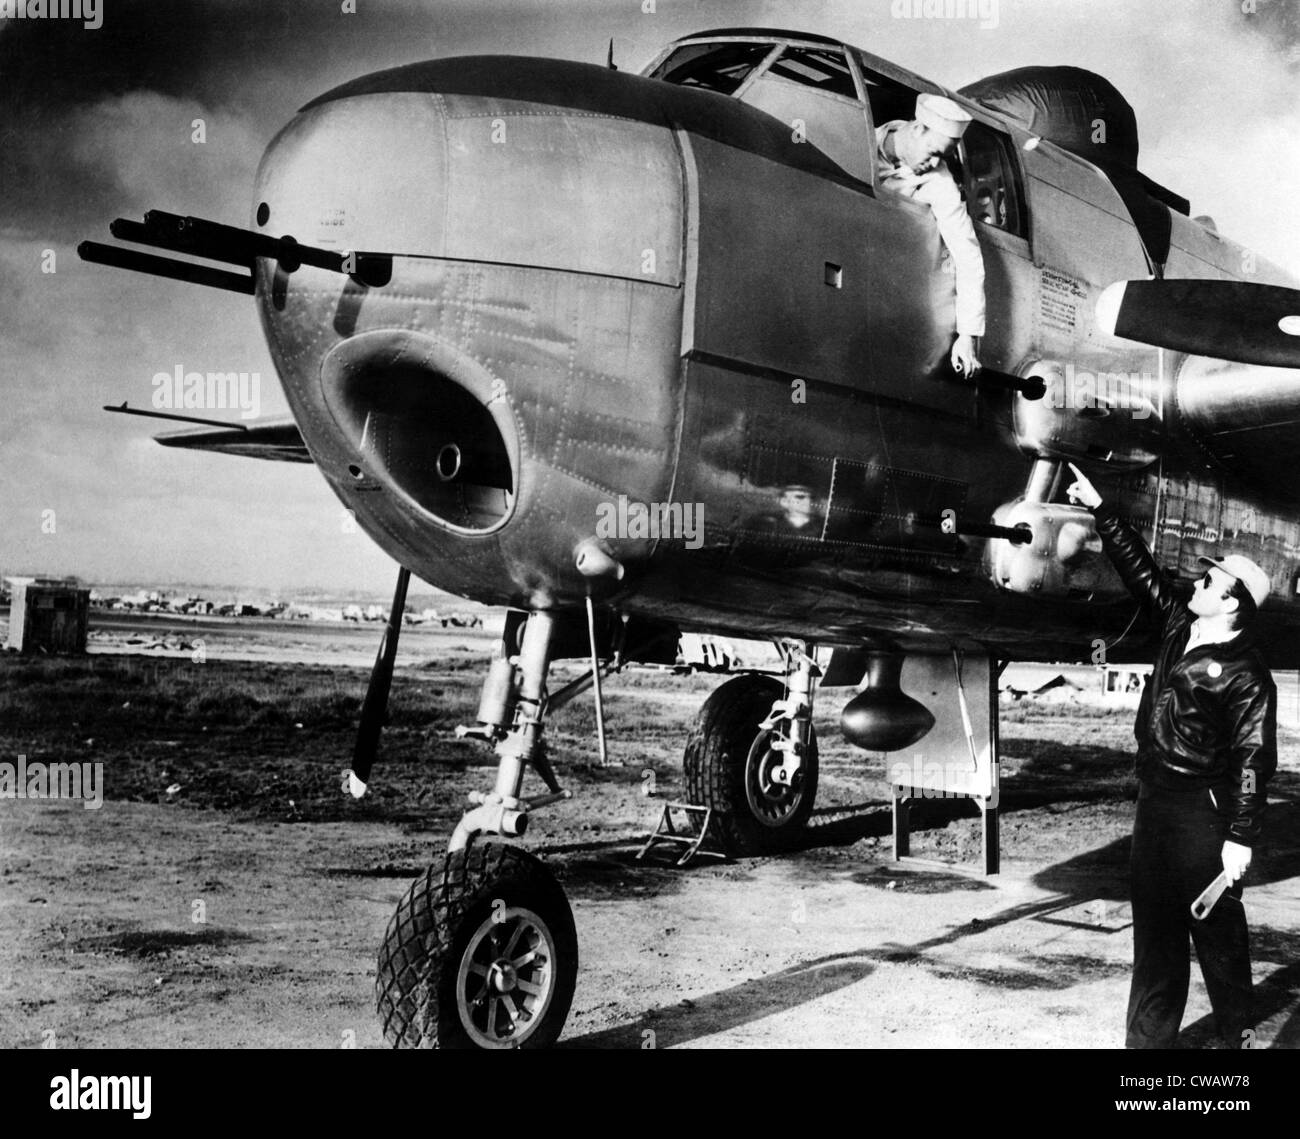 B-25 Mitchell bomber, used against the Germans during World War II, April, 1944. Courtesy: CSU Archives/Everett - Stock Image